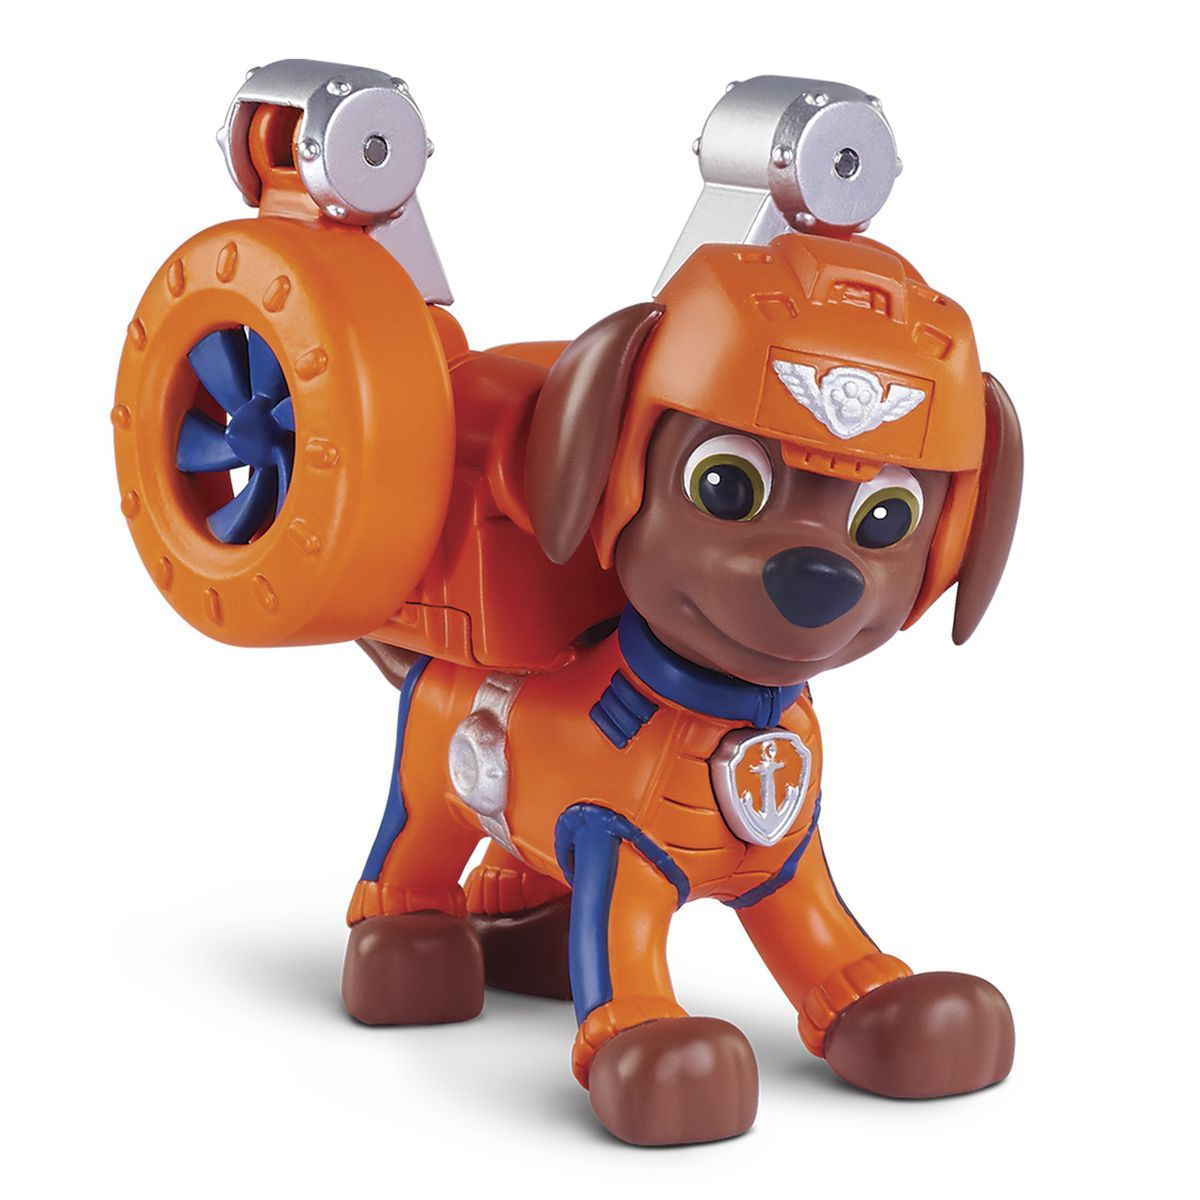 Charming Paw Patrol Air Force Pups   Zuma. Loading Zoom